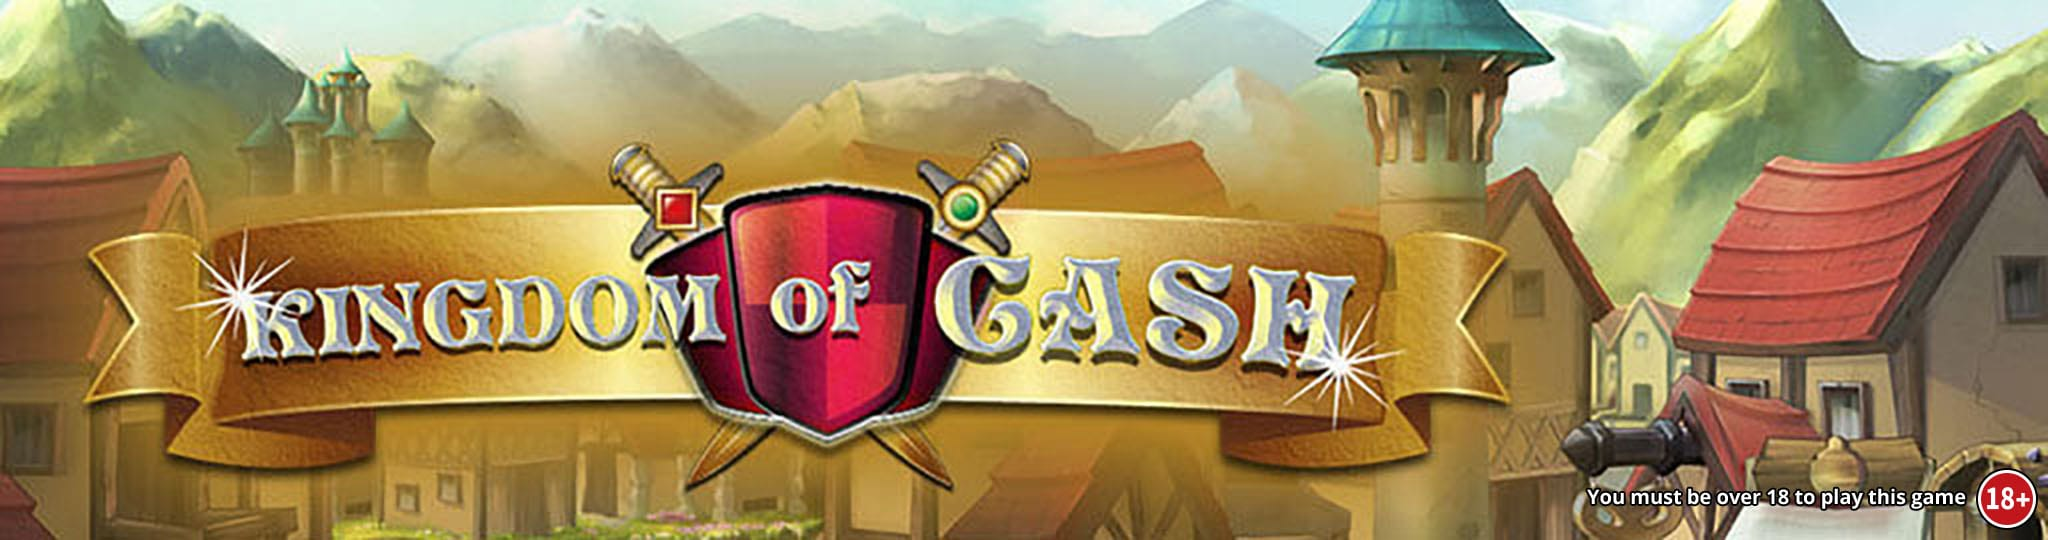 Kingdom of Cash Jackpot Slots game logo